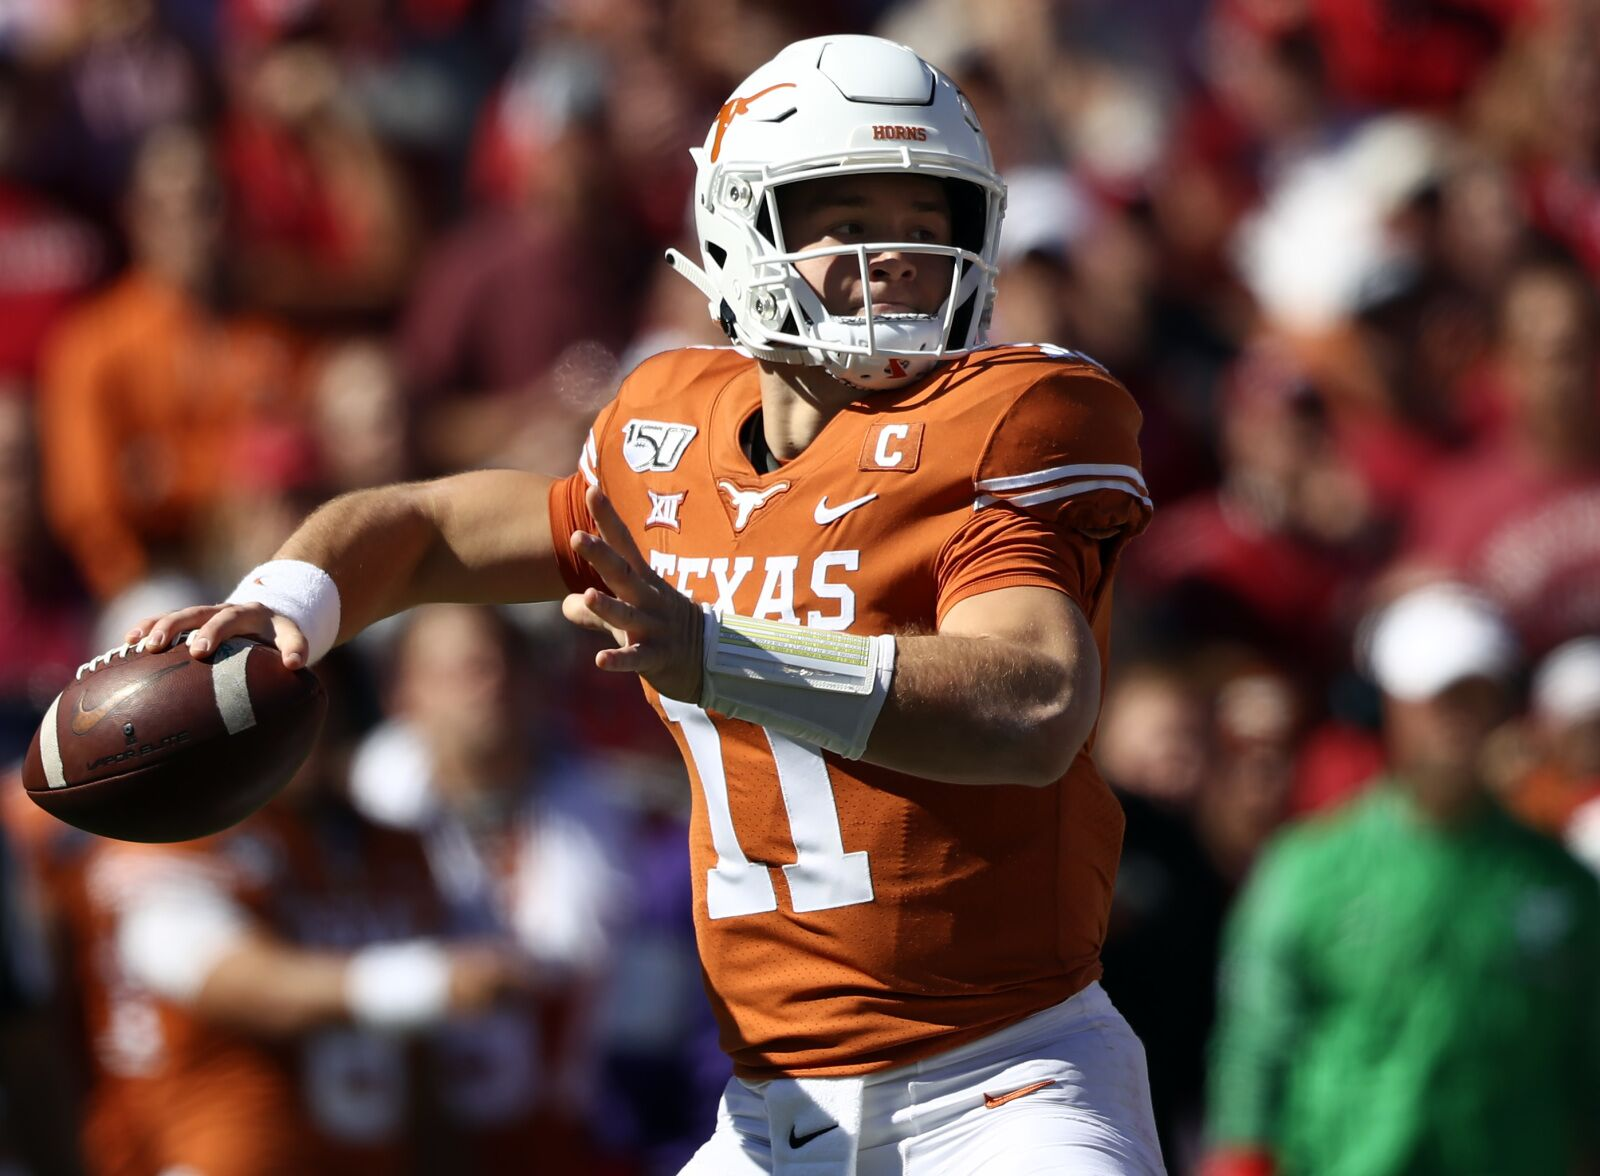 Texas-Kansas was the game of the year no one saw thanks to The Longhorn Network